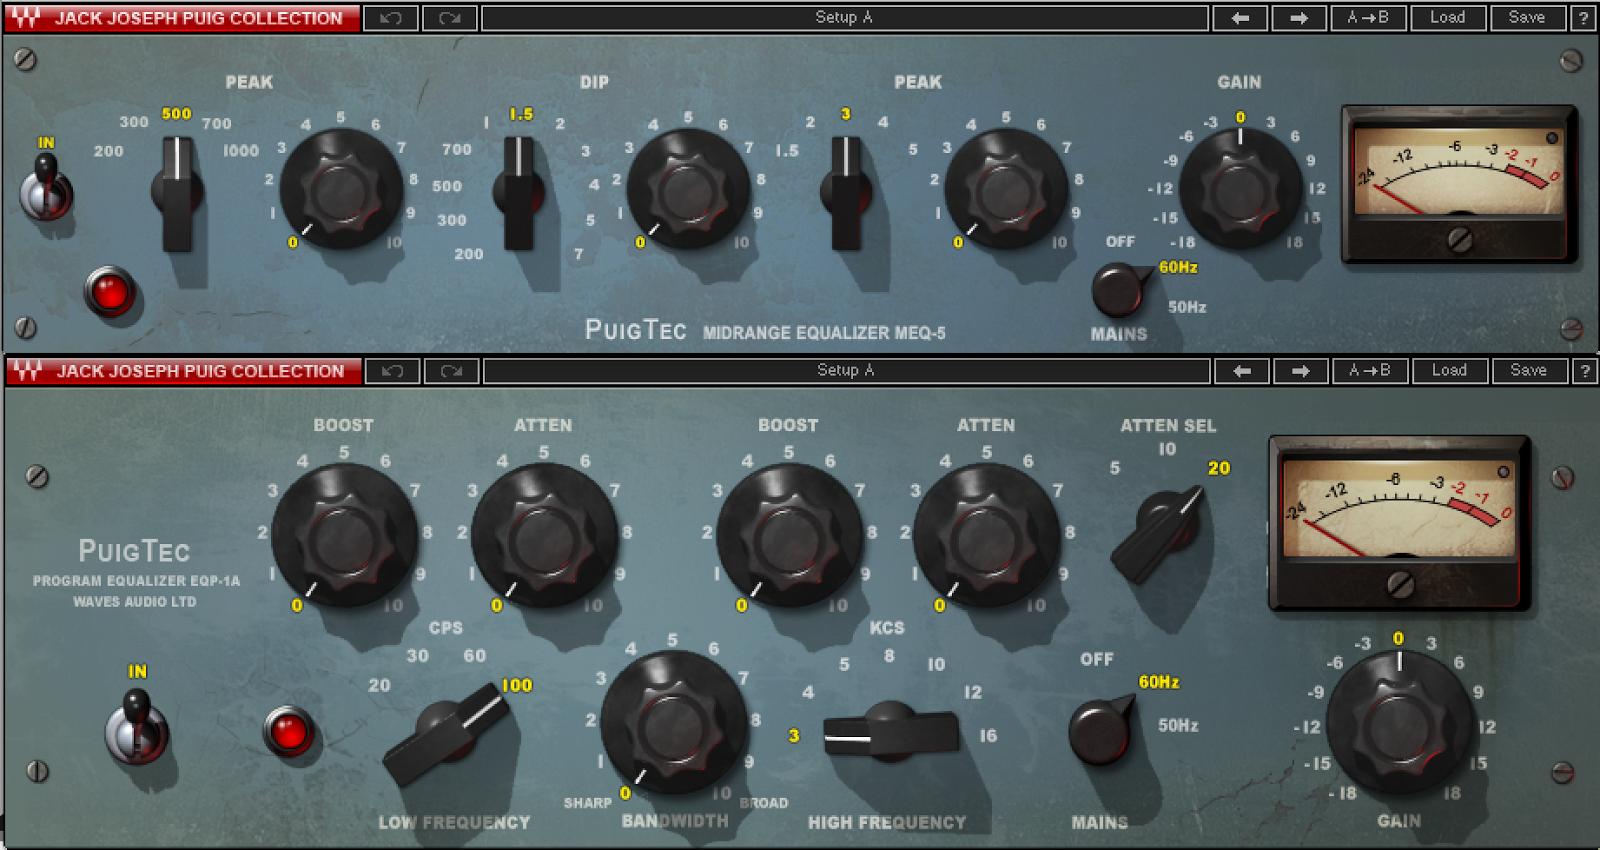 cymatics-puigtec-best waves plugins